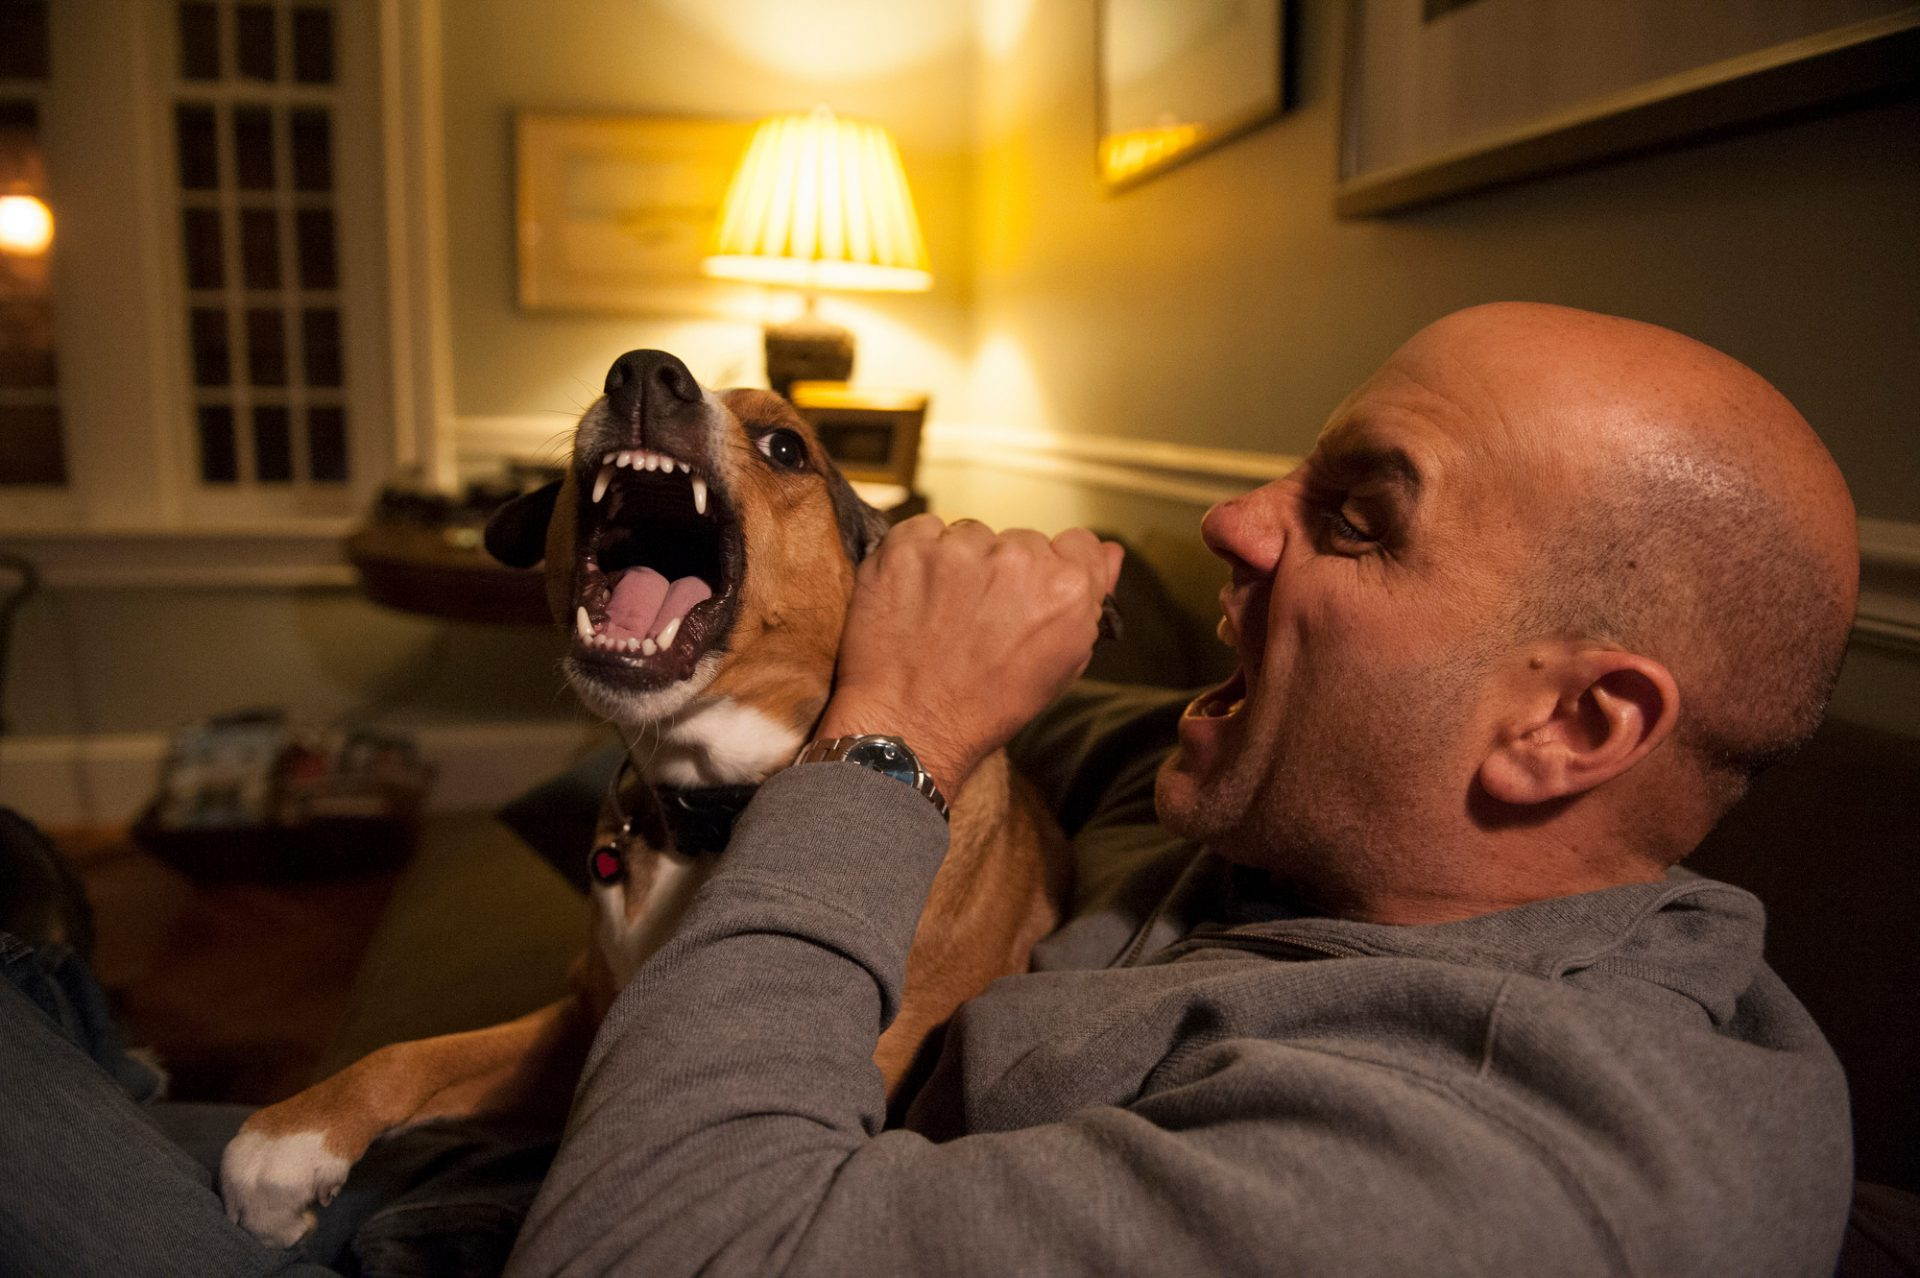 Photo: A man pretends to bite his dog's ear in Washington, DC.